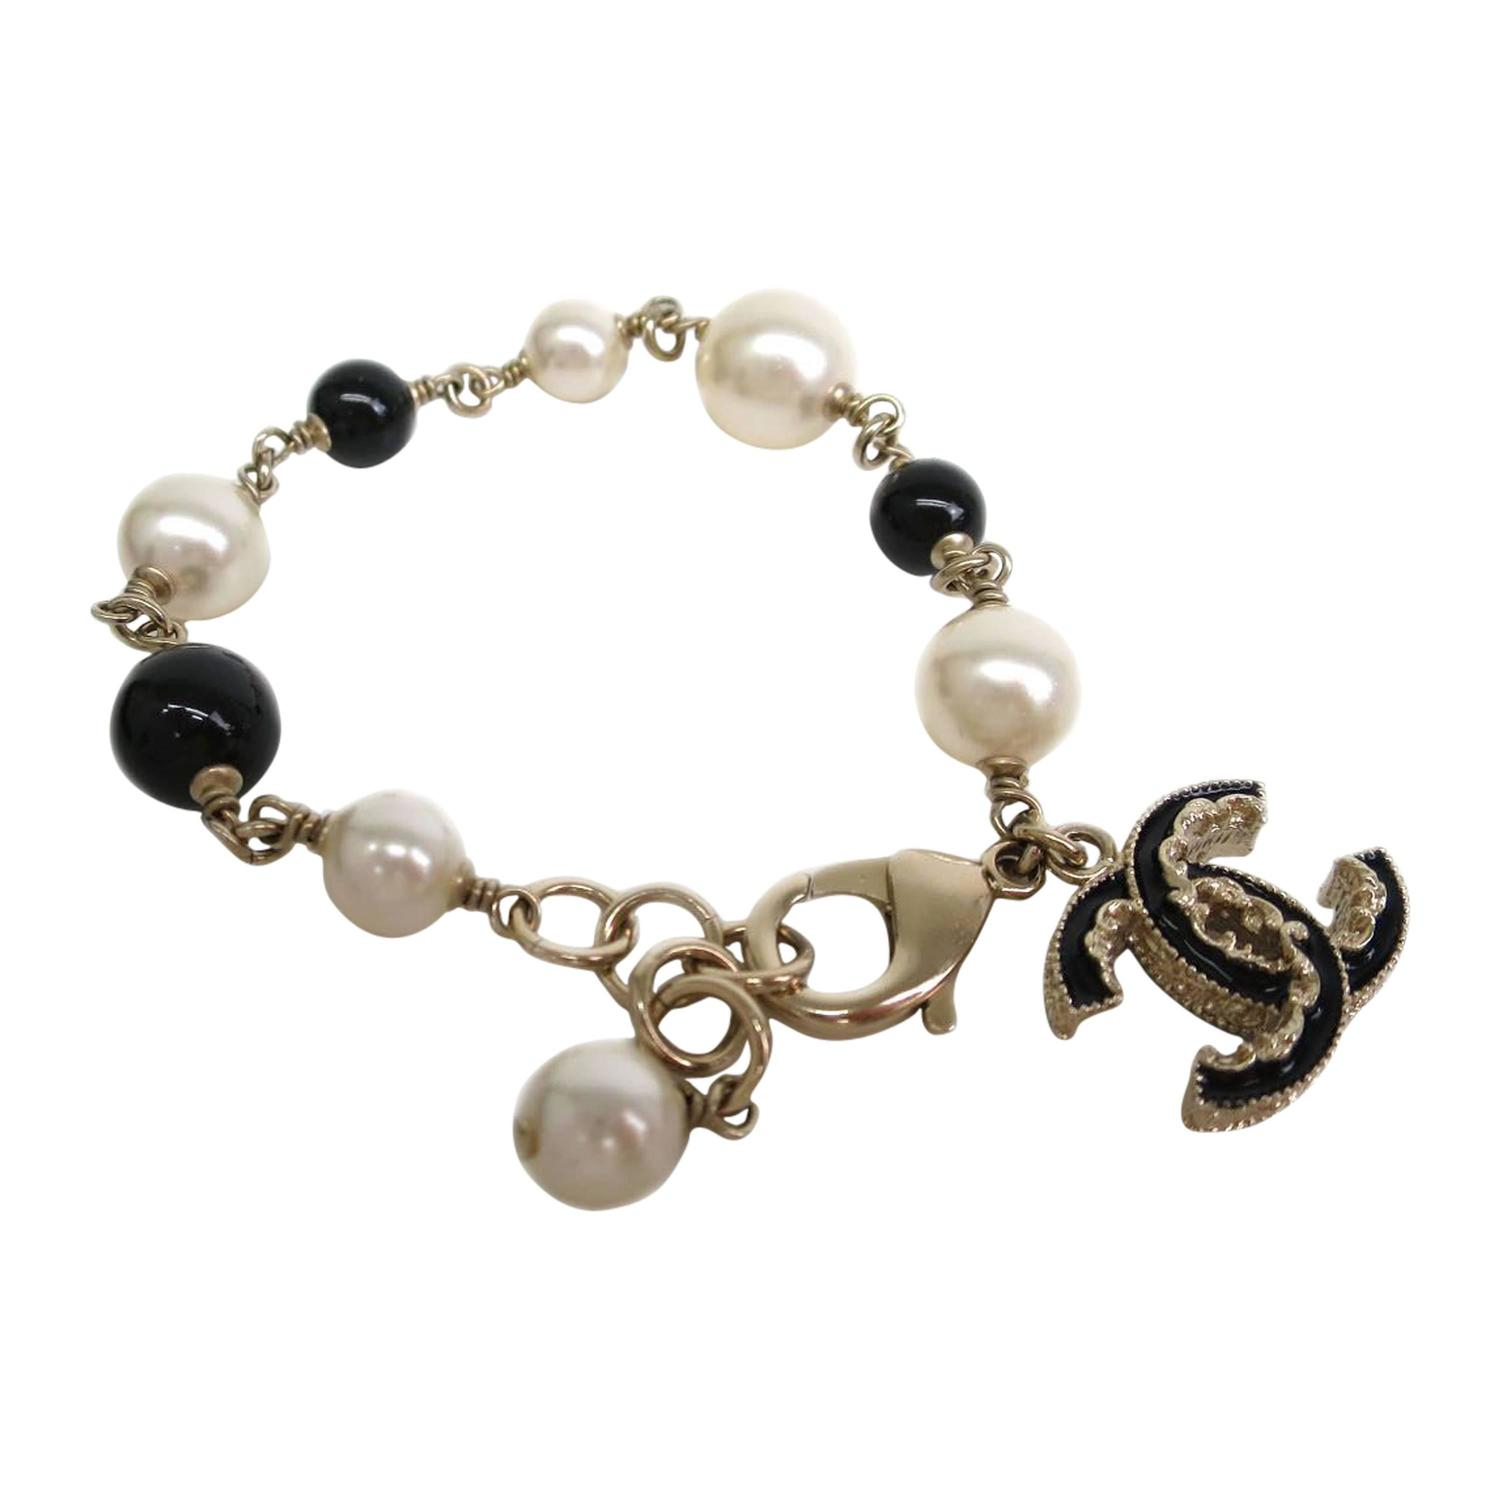 chanel gold pearl bead cc charm chain bracelet at 1stdibs